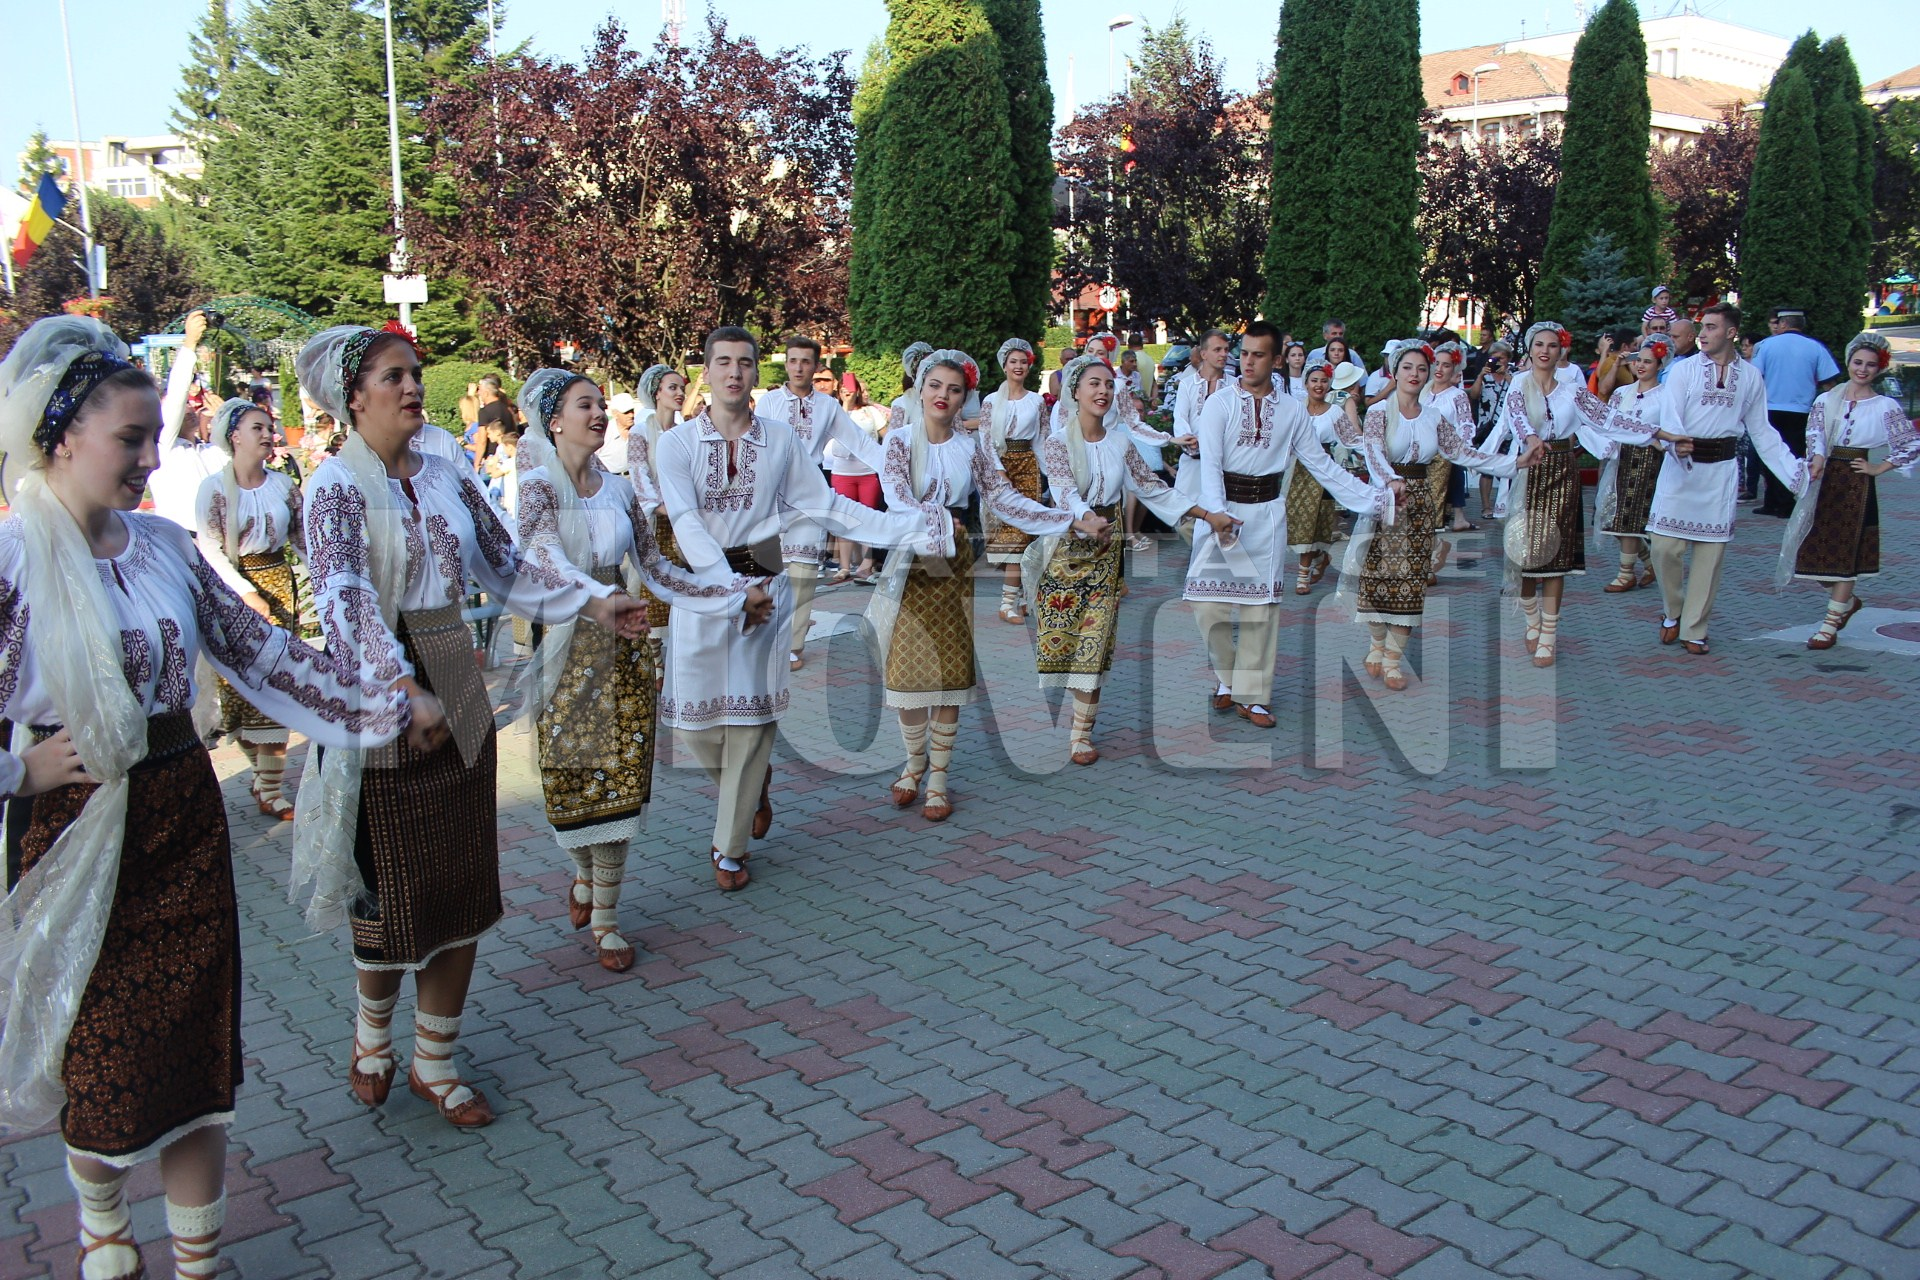 festivalul-carpati-mioveni-august-2017 (21)